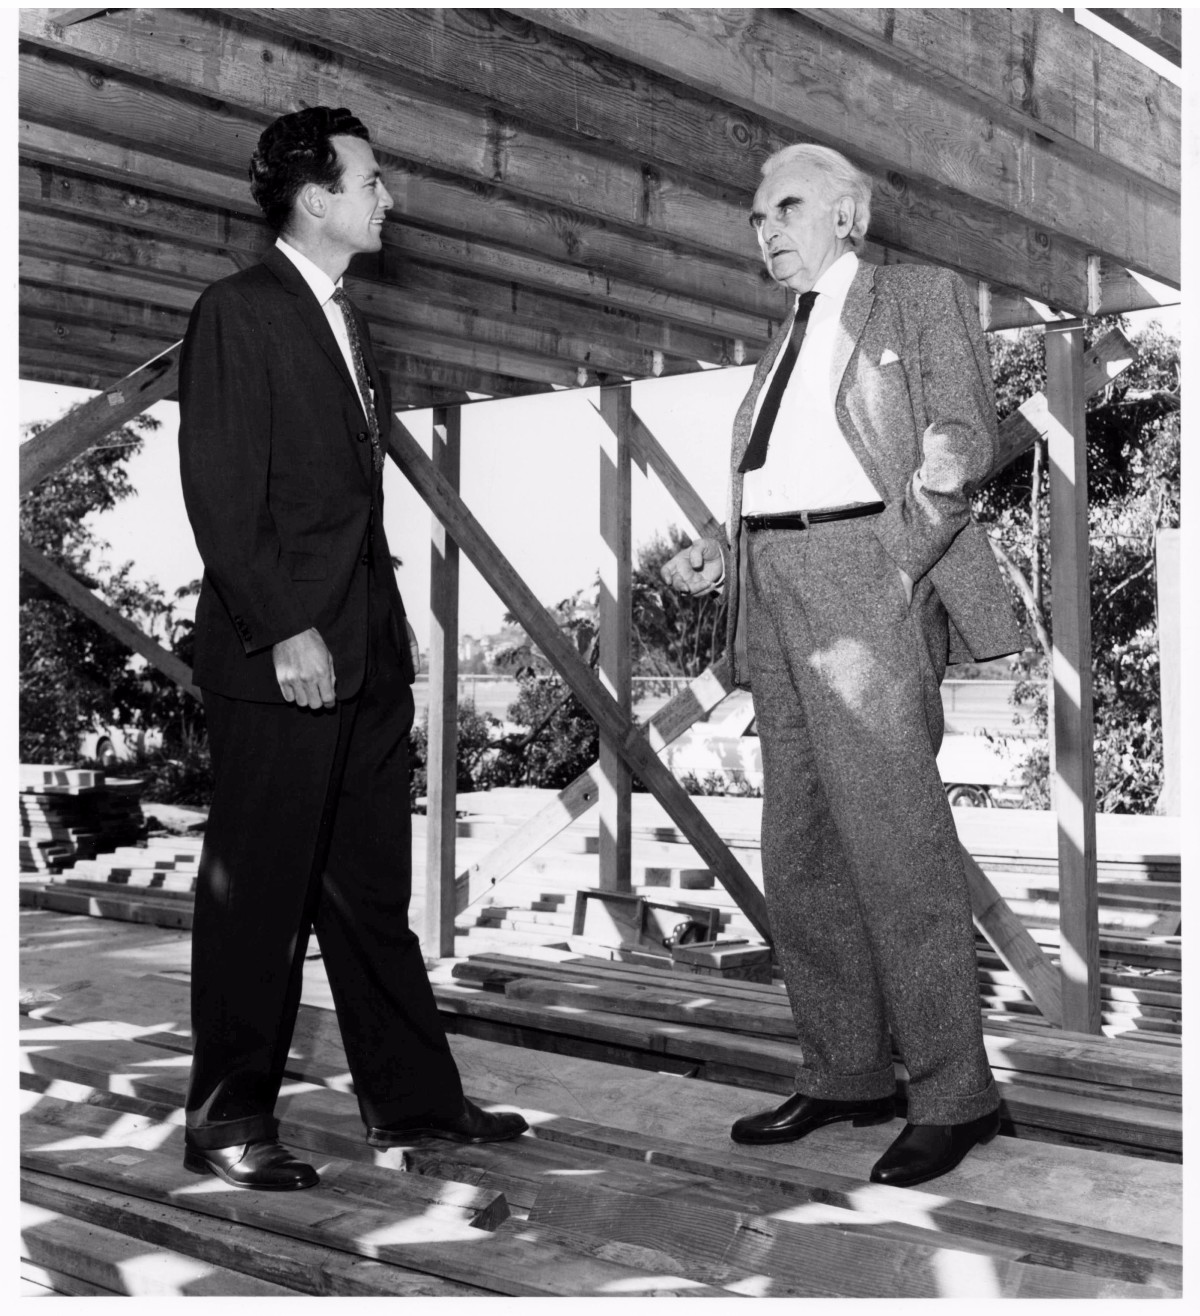 Richard Neutra and his son Dion at the framing of the VDL II house | Courtesy of Neutra Institute